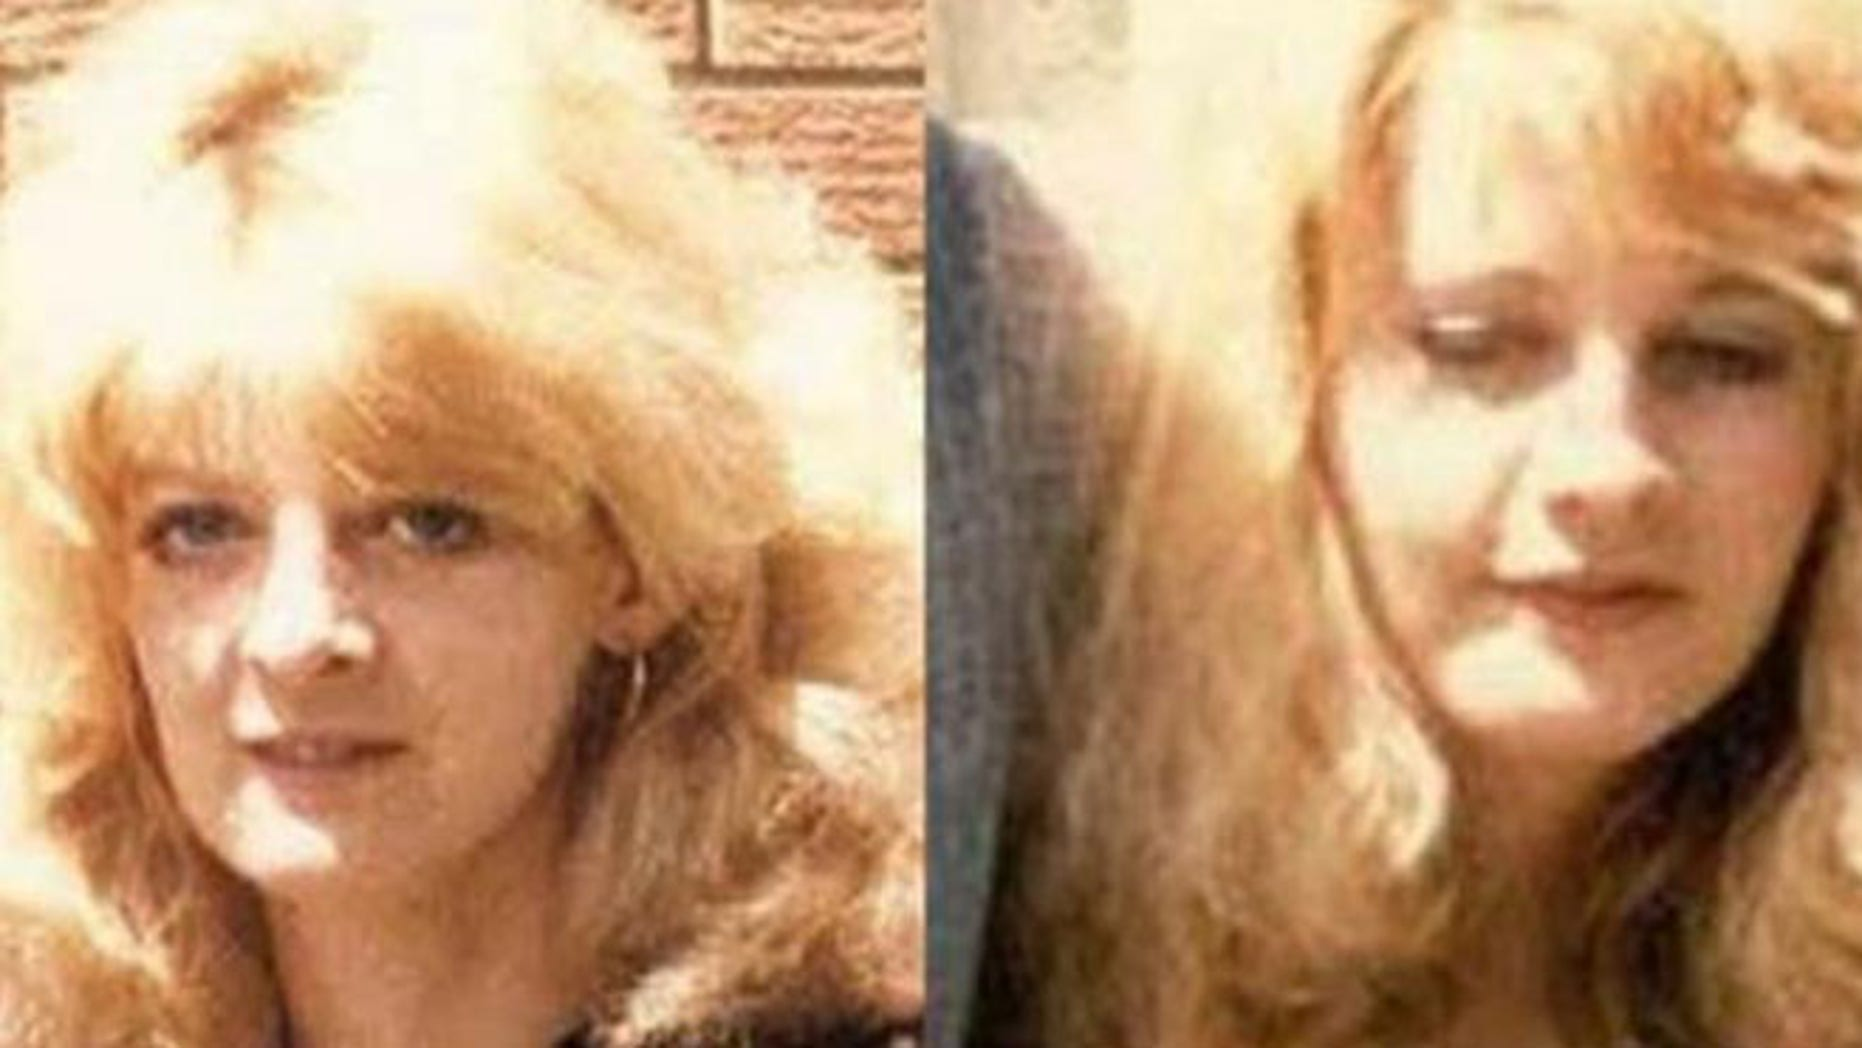 Anna and Kym Hakze in photos taken before their disappearance in Canada 30 years ago (Lethbridge Police)